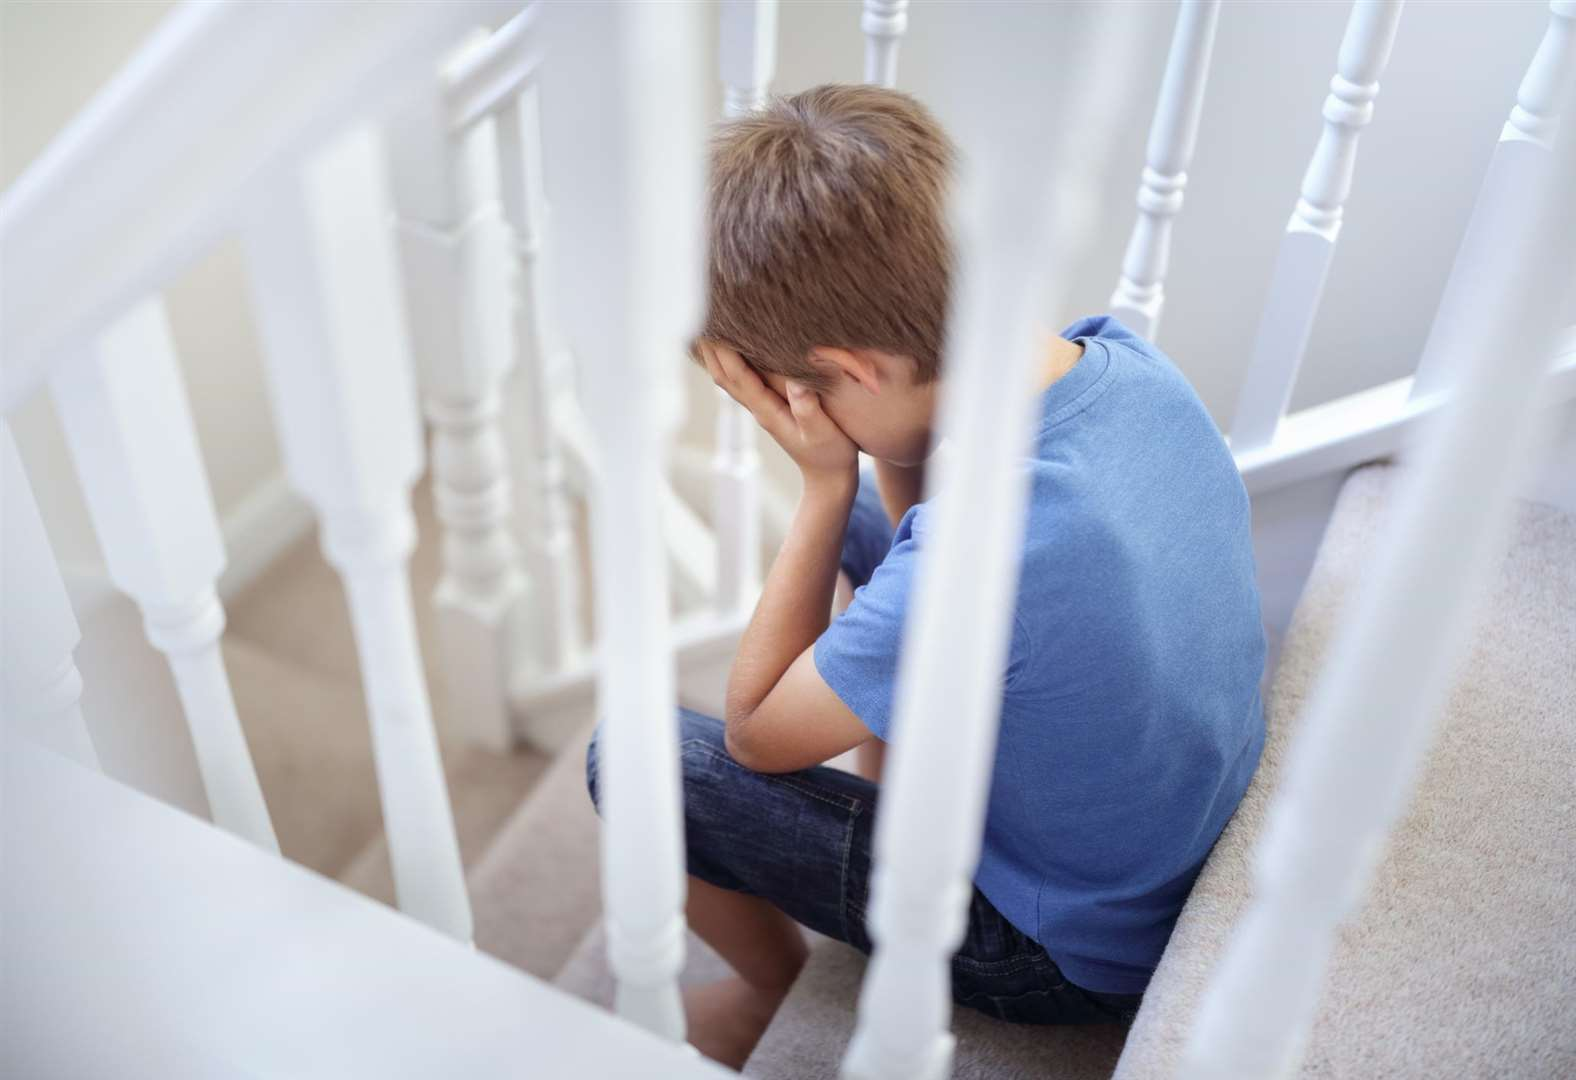 When is a child most at risk of abuse?